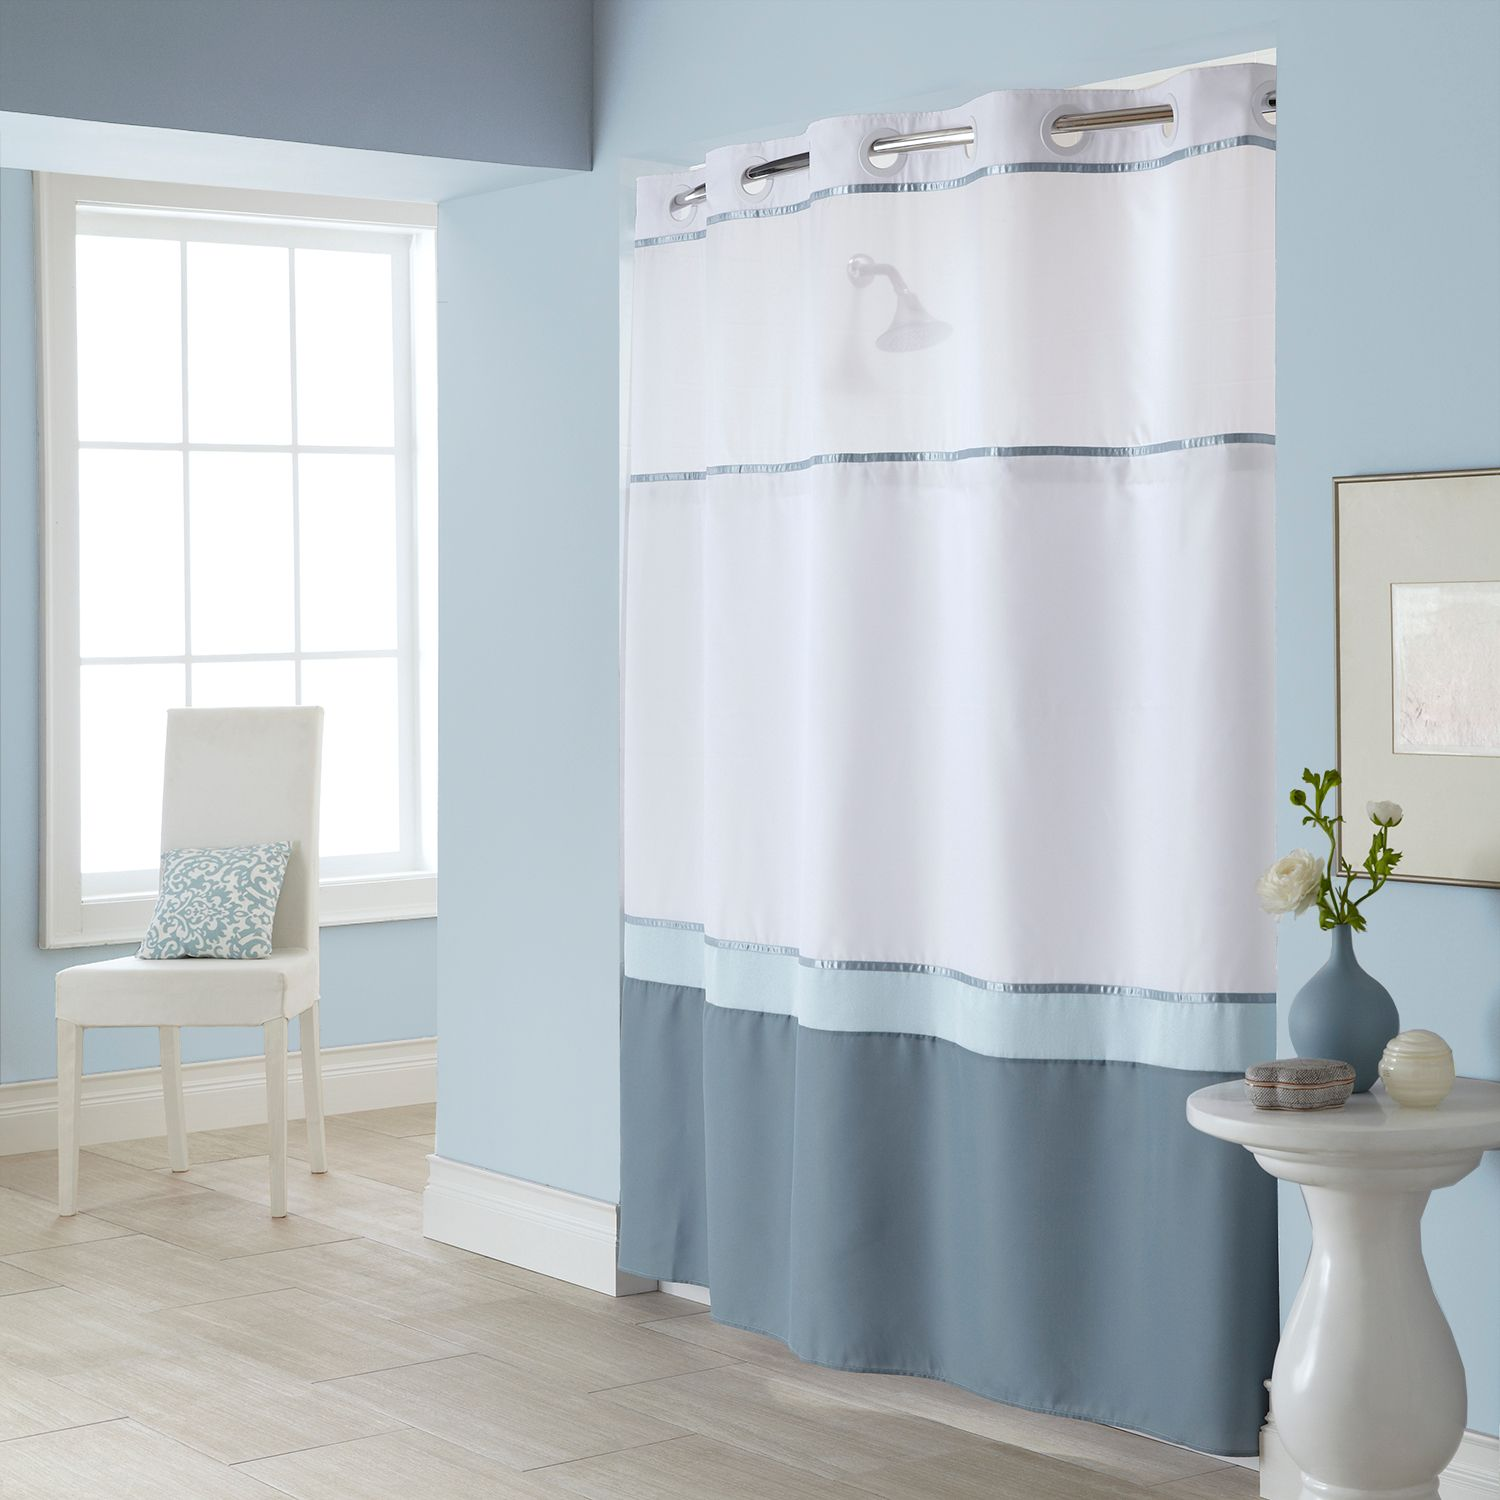 Fabric Shower Curtain U0026 Liner Set. Blue